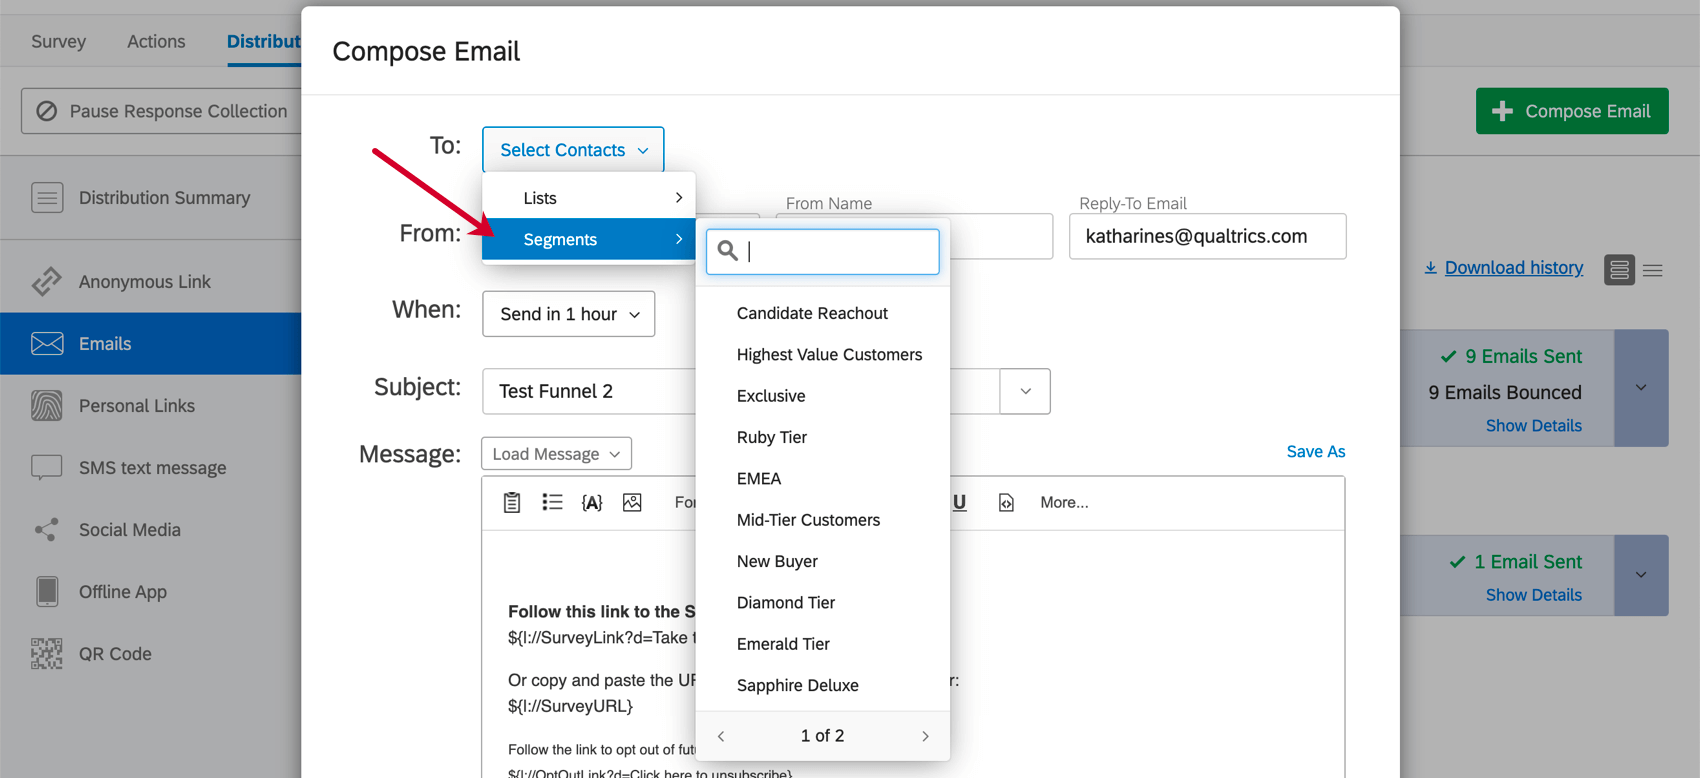 When choosing a contact list, also have the option to choose from segments in the directory